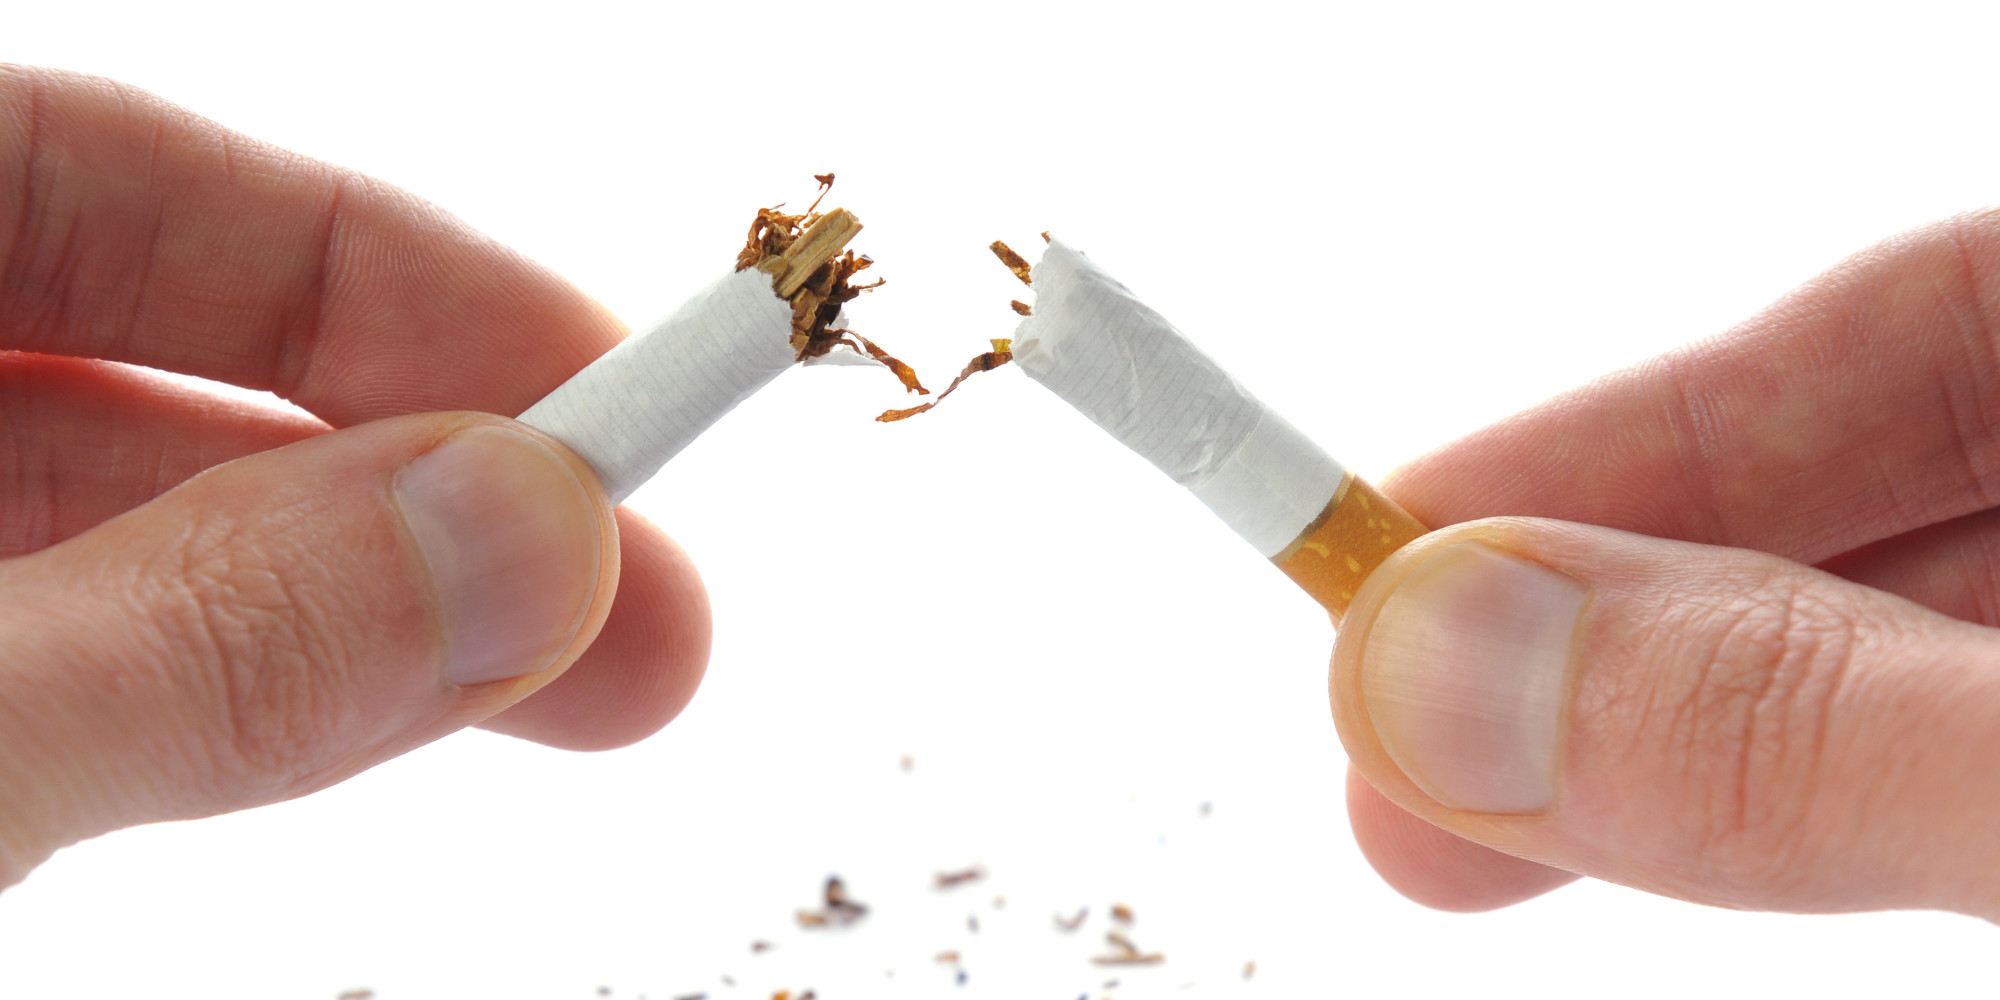 how to quit smoking solution for how to for dummies the mindful geek a radically new way to quit smoking the huffington post the mindful geek a radically new way to quit smoking the